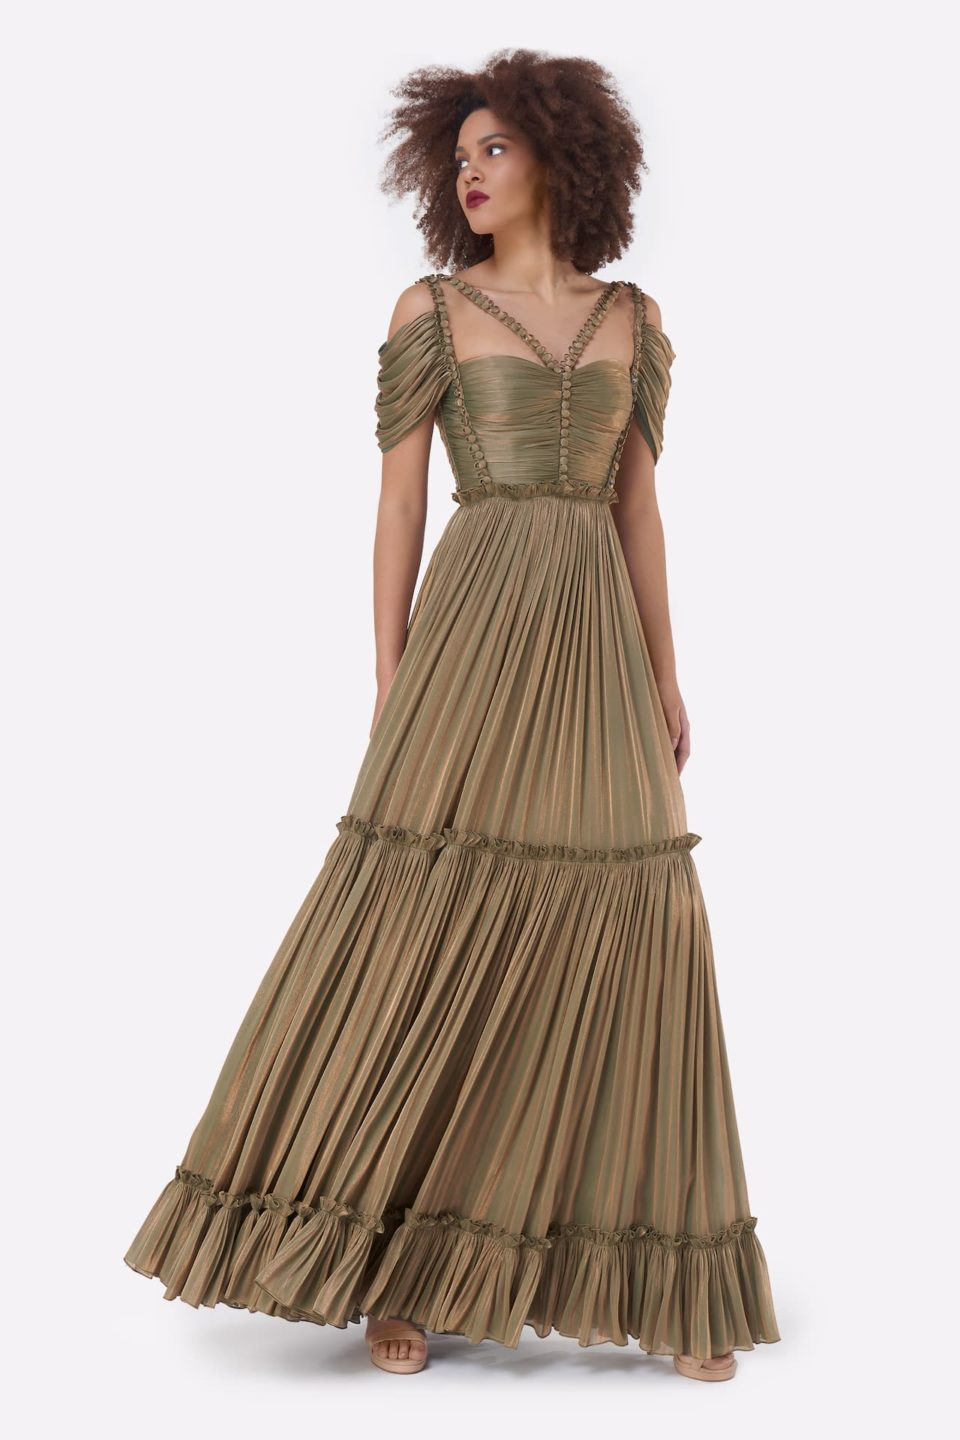 Gloriana PS2153 Green Gold Iridescent Lurex Georgette Button-Detailed Tiered Gown with Cut-outs & Draped Bodice